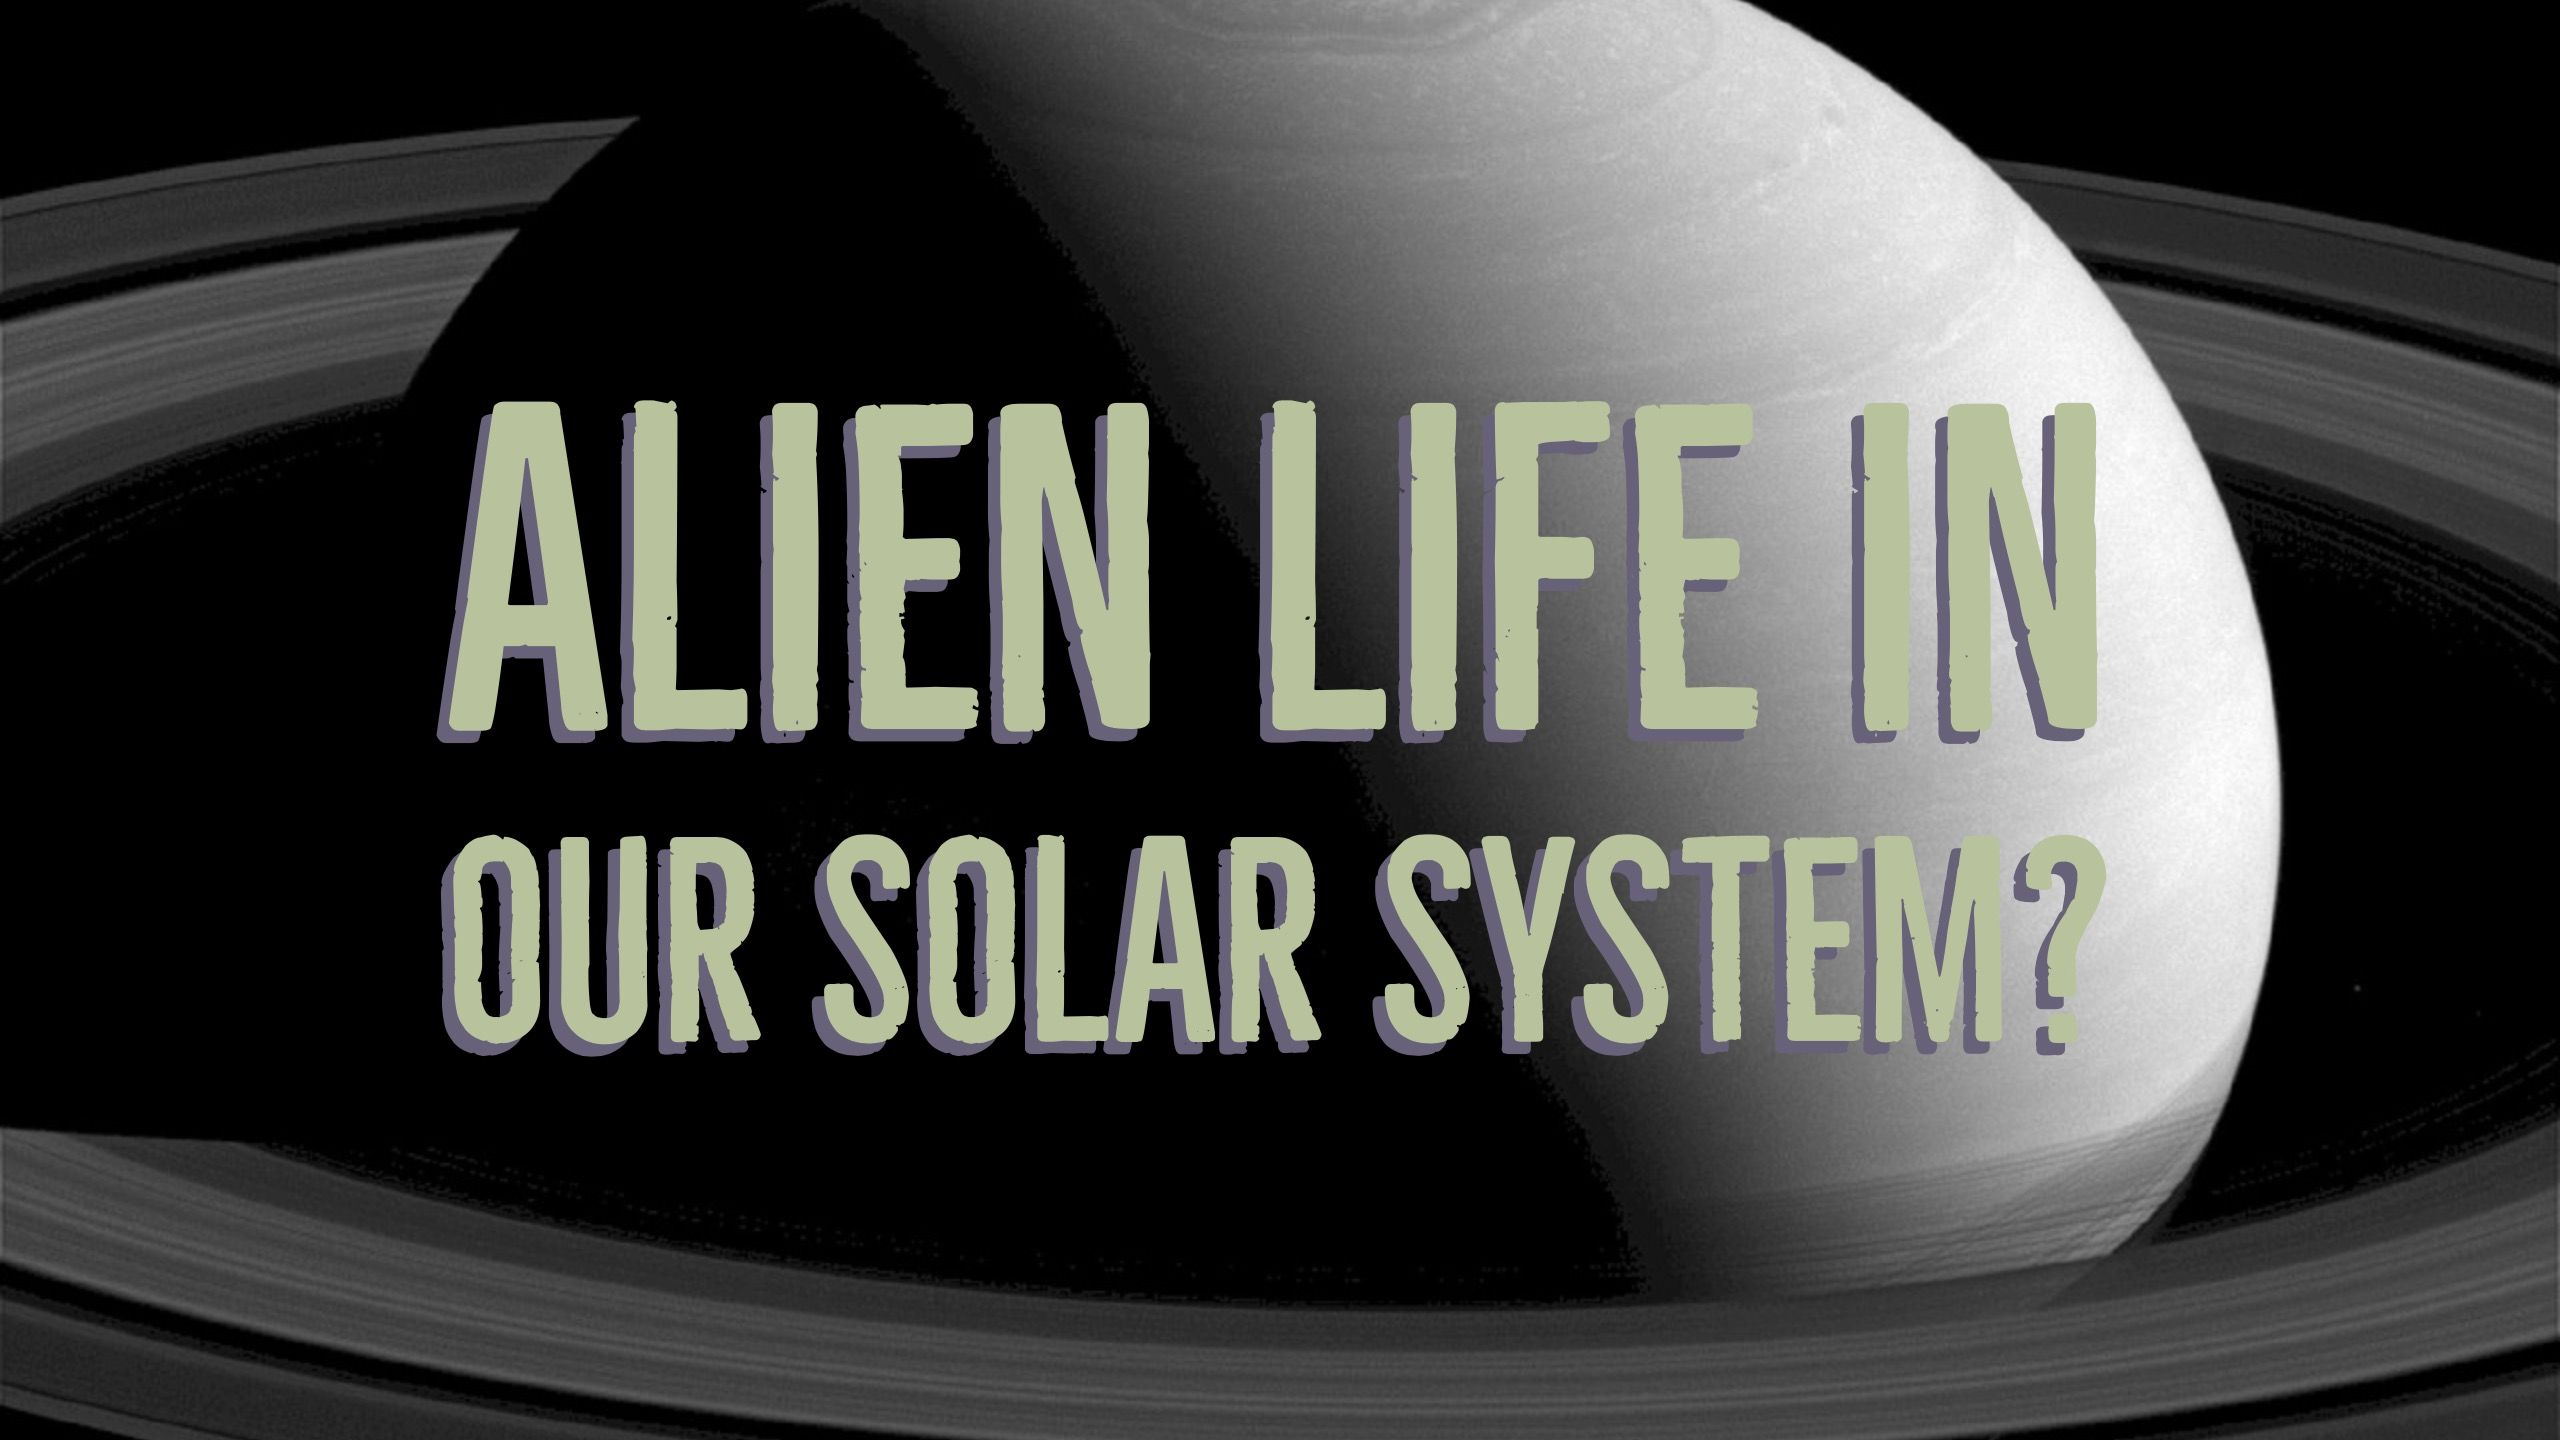 NASA Reveals Alien Life Could Live in Our Solar System ...